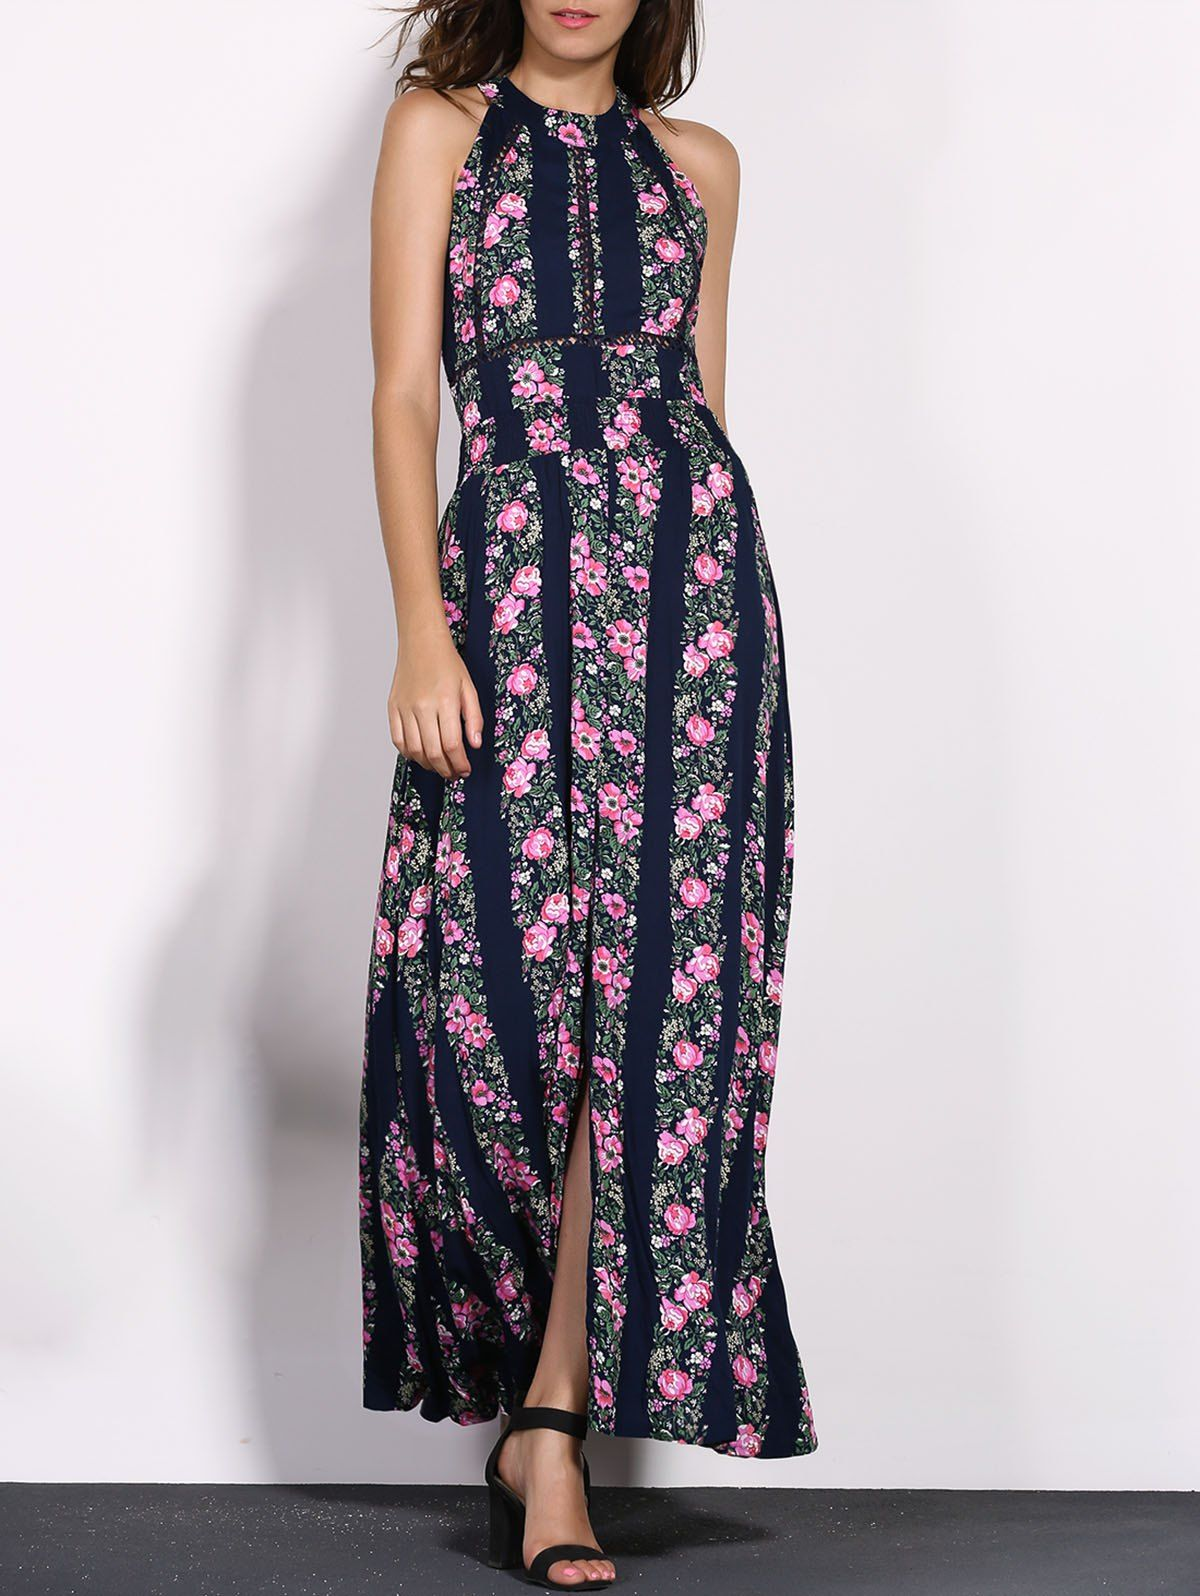 3e14d0977f Charming Jewel Neck Sleeveless Backless Floral Print High Slit Maxi Dress  For Women Maxi Dresses